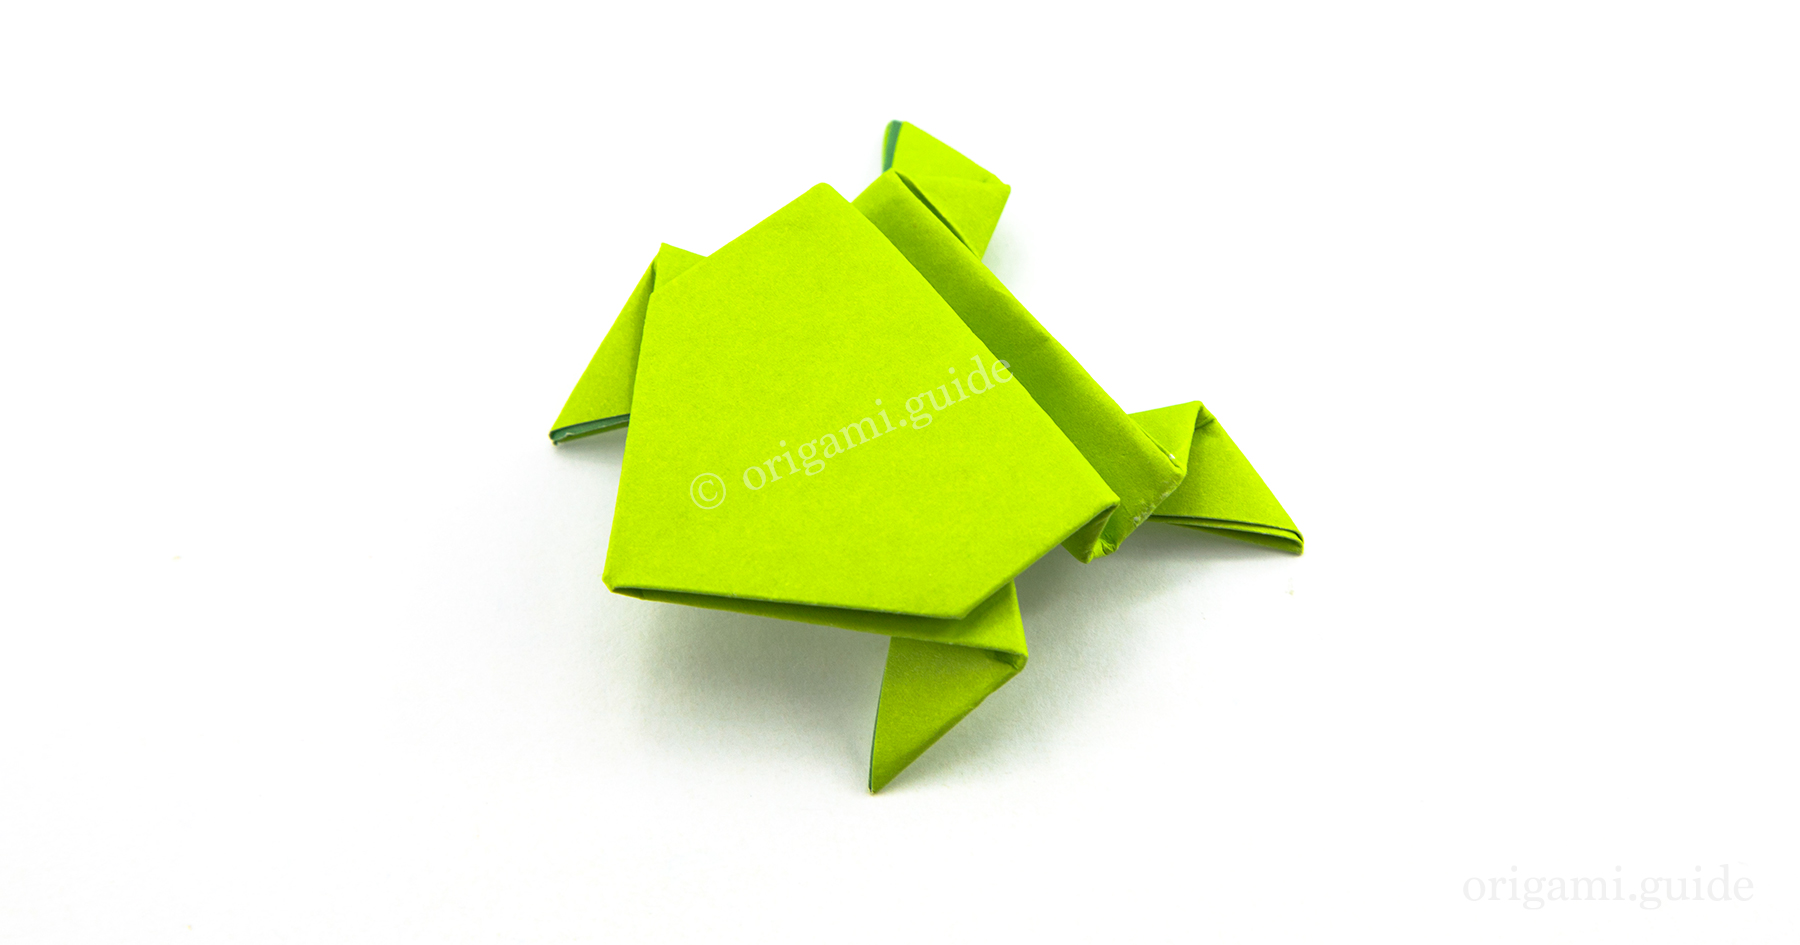 How To Make An Origami Jumping Frog | Origami Guide - Part 3 - photo#11